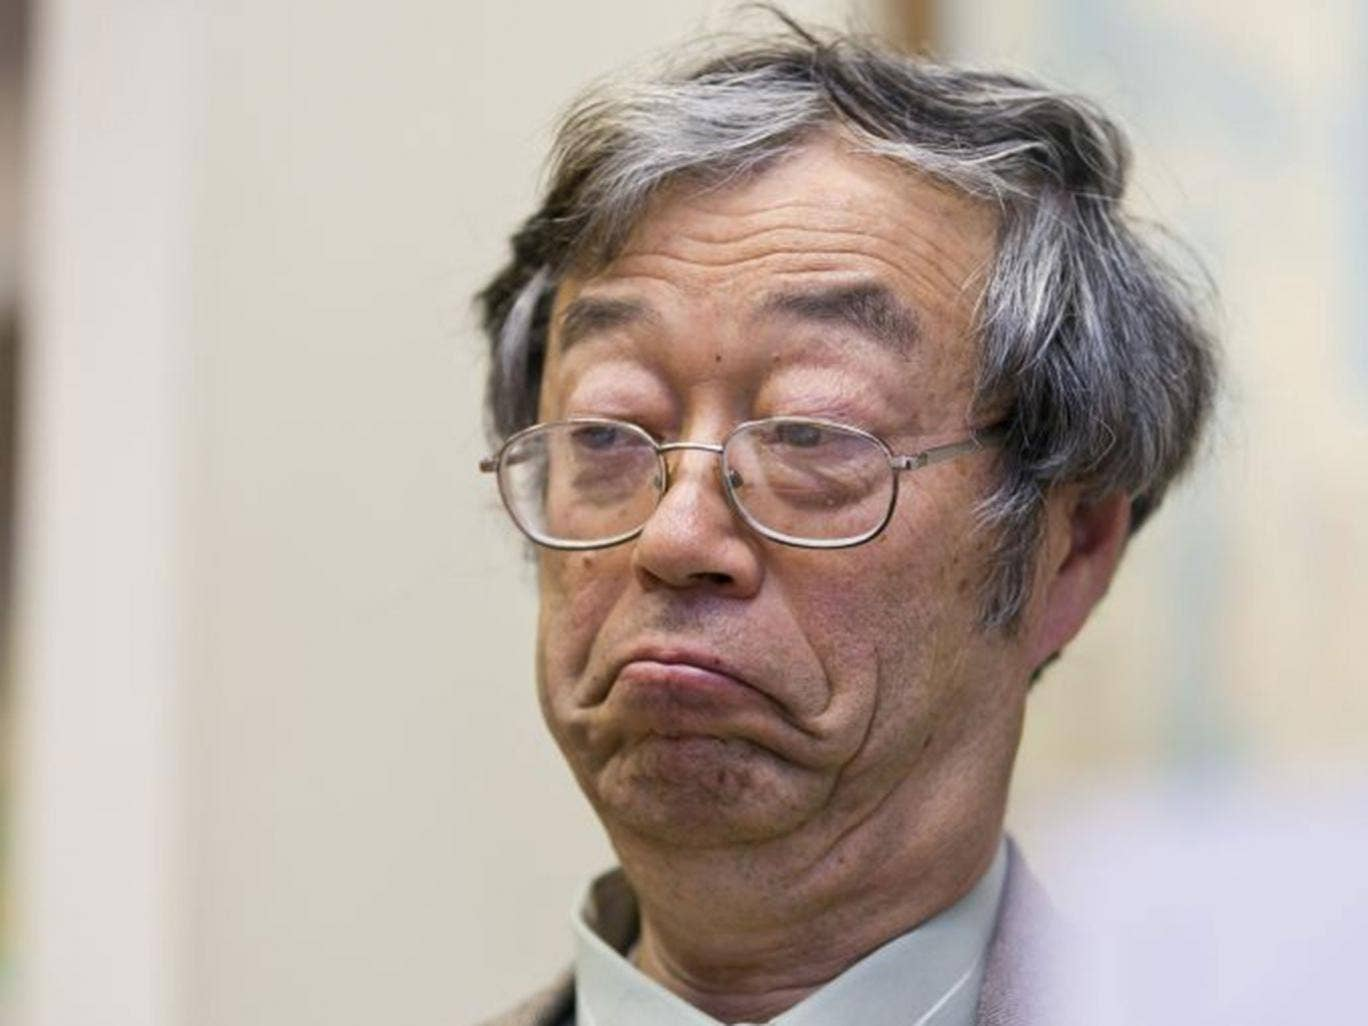 Satoshi Nakamoto, who denies being the founder of Bitcoin